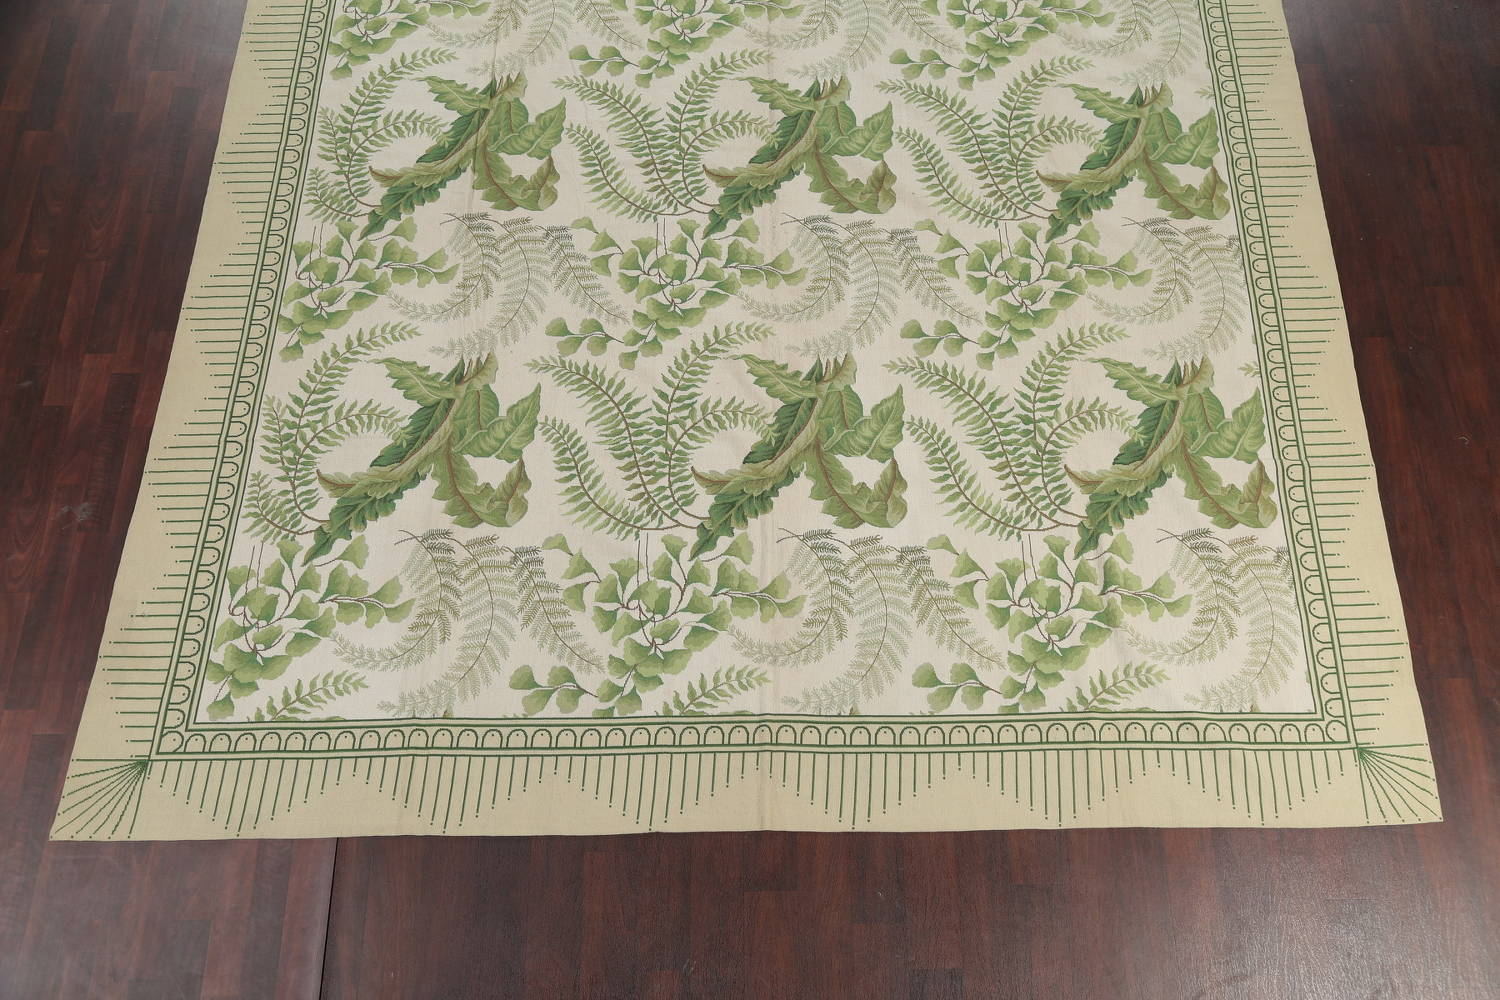 Mansion Floral Green Aubusson Savonnerie Needle-Point Chinese Wool Rug 11x16 image 5